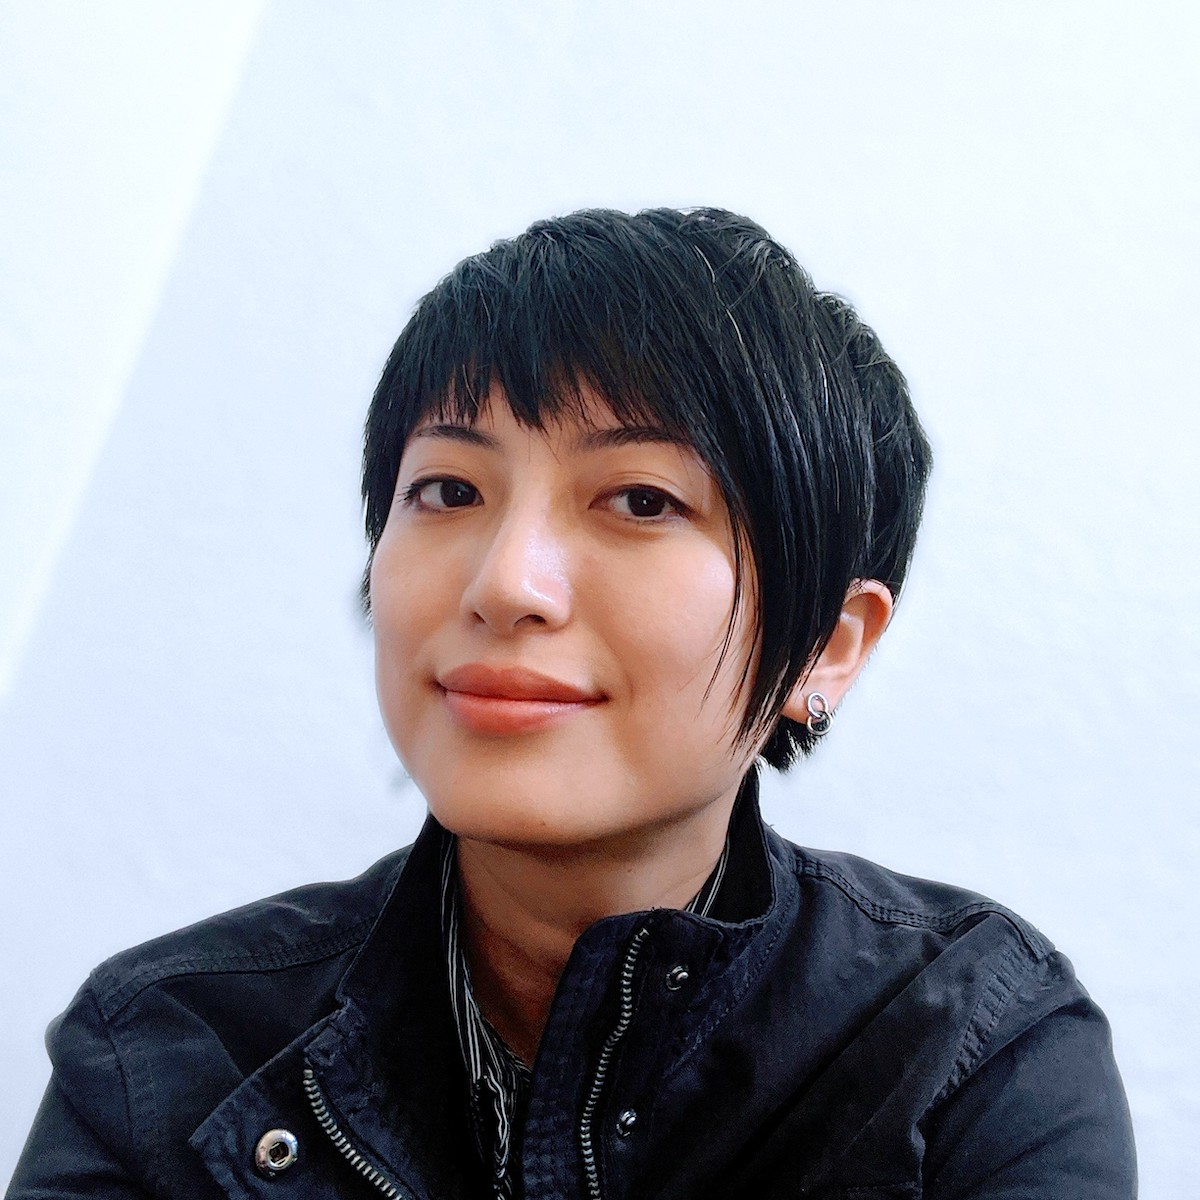 Photo of a non-binary Han Taiwanese descendent with a short, assymetrical haircut and a few strands of white hair. They have a diamond-shaped face, light-olive skin, almond-shaped eyes and a high nose bridge. They wear a black, unzipped jacket and a tiny earring consists of two intersecting rings. They appear to be sitting at the corner of the room and they look into the camera with a soft but confident expression.